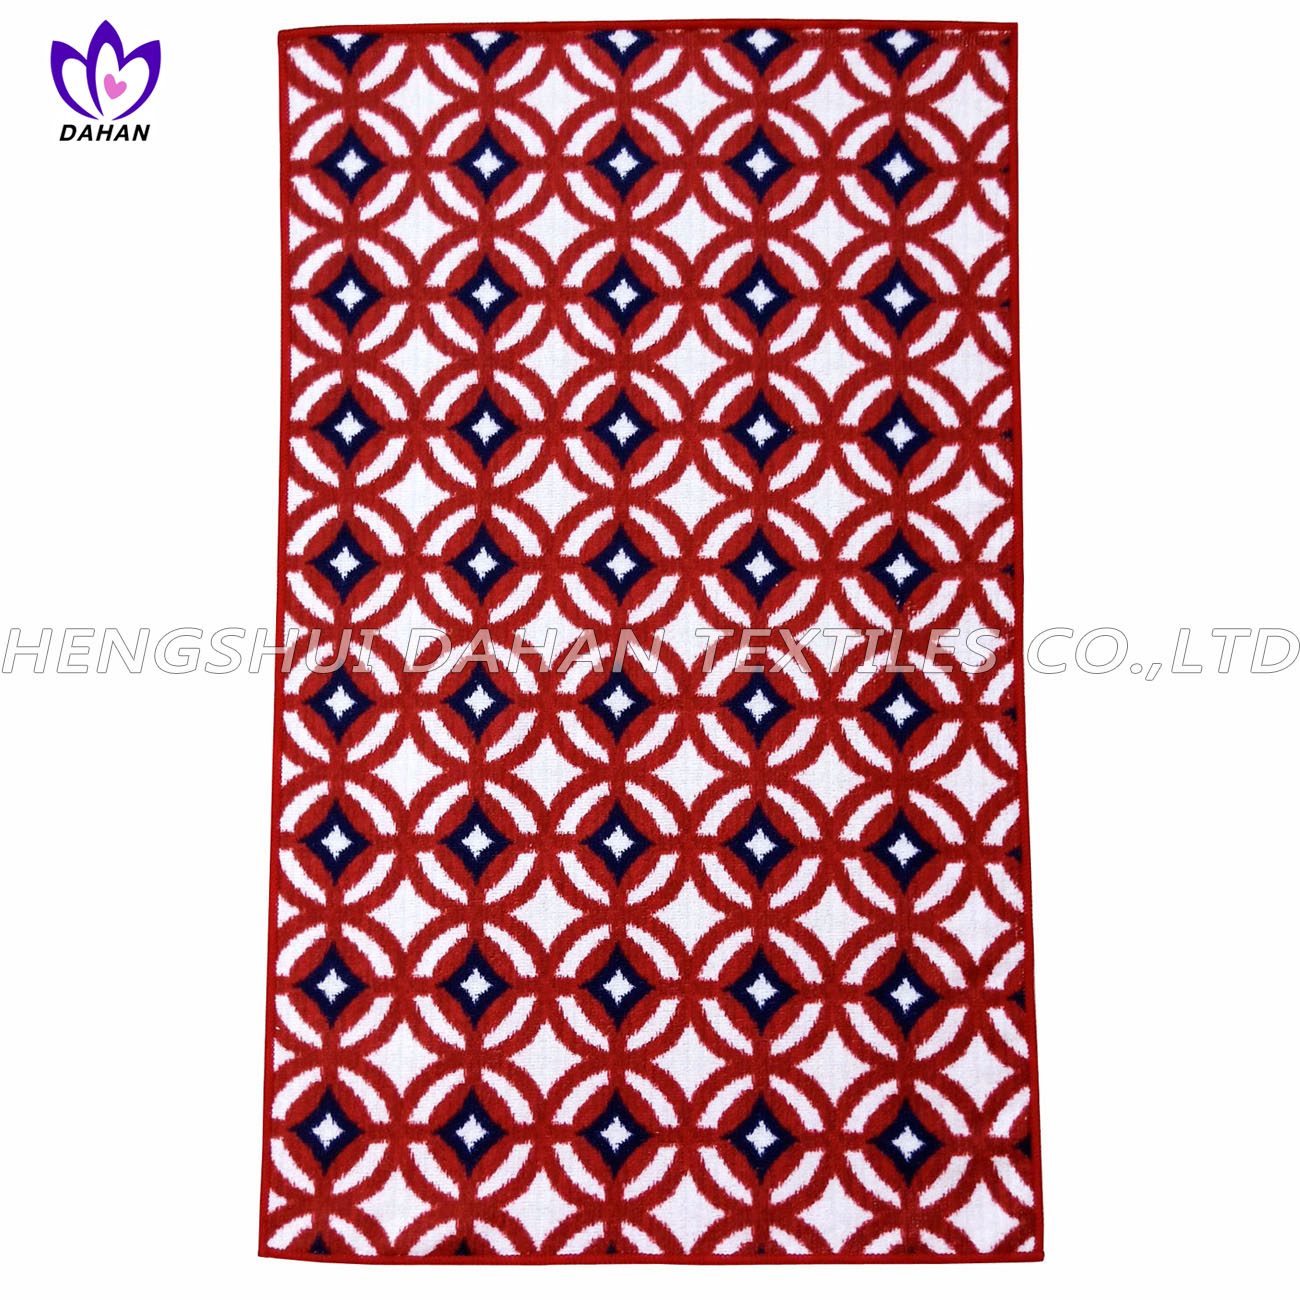 DH-MH05 100%polyester printing microfiber towel